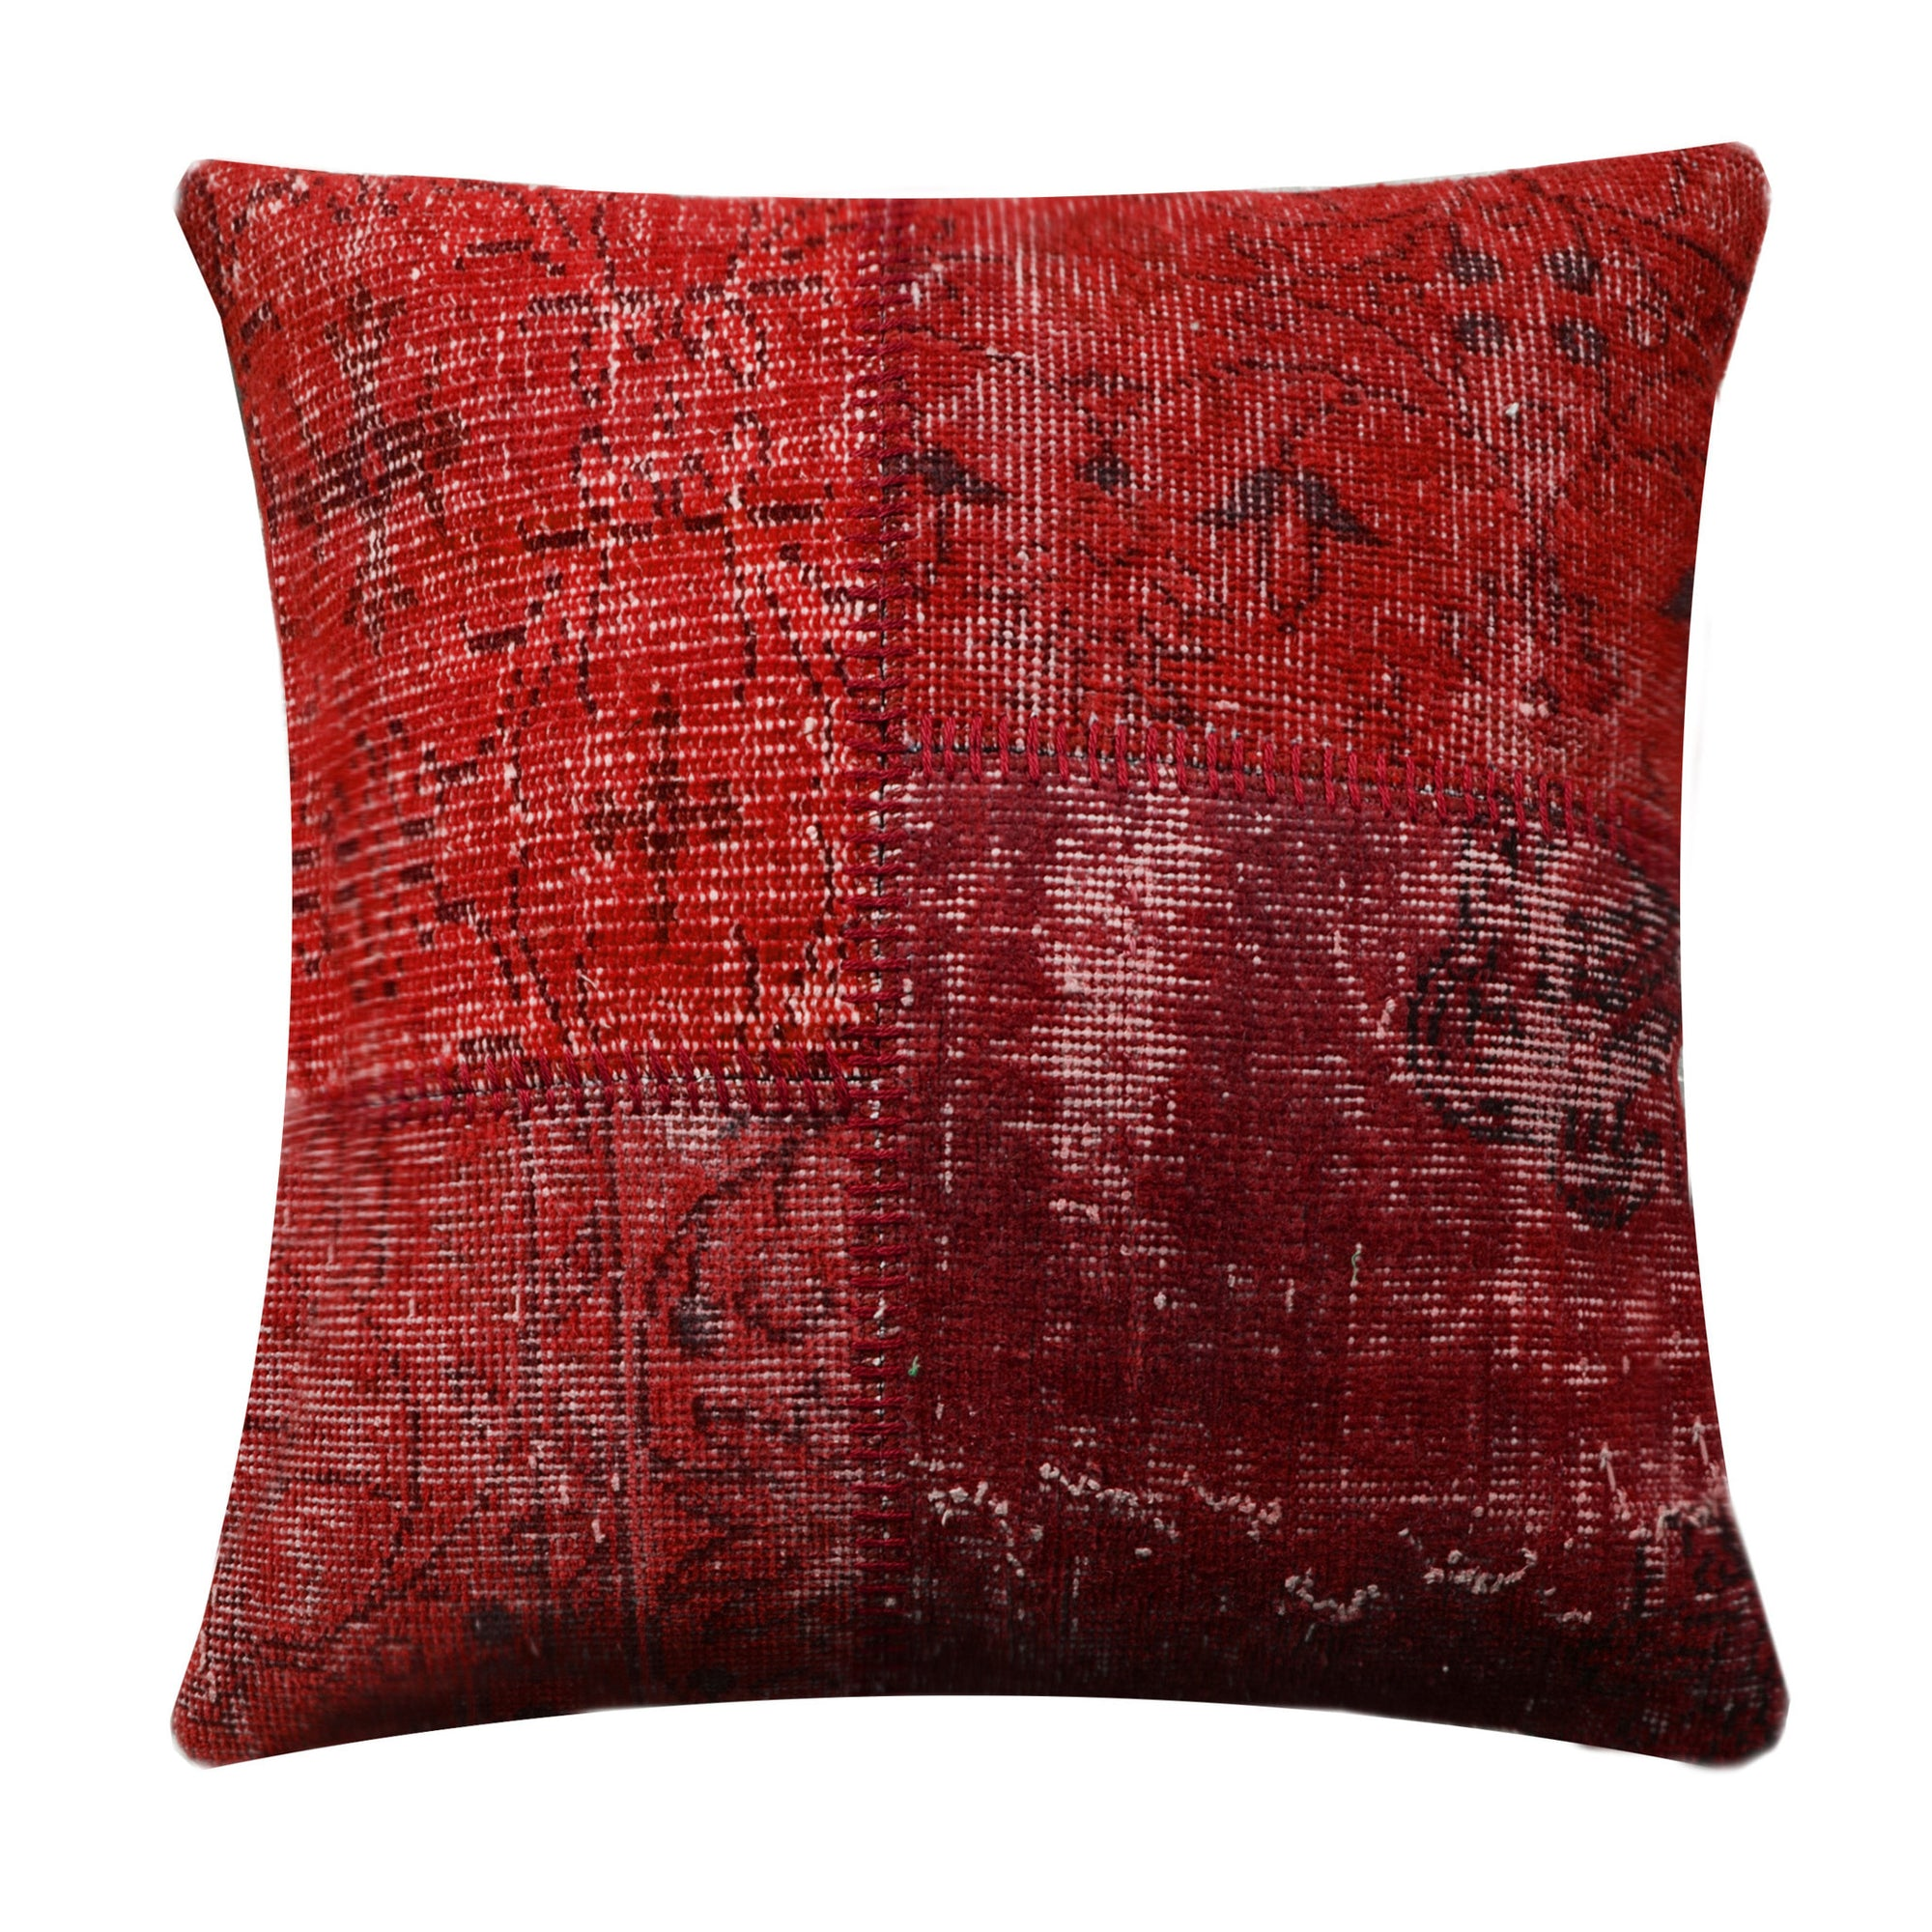 BURSA HANDMADE OVER DYED CUSHION COVER 60X60 SEC0072RL - ebarza